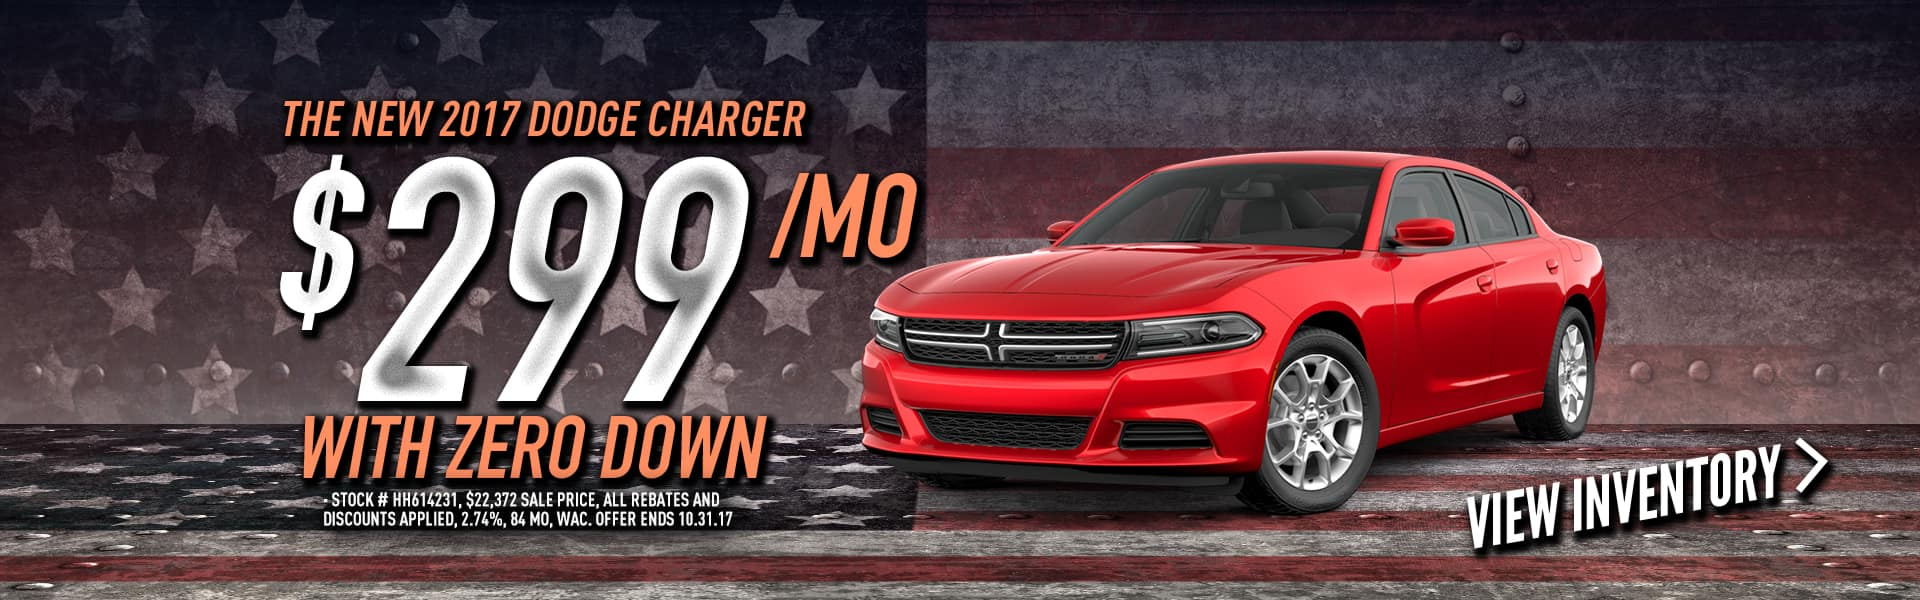 bob howard chrysler jeep dodge ram dealer near me 73114. Cars Review. Best American Auto & Cars Review